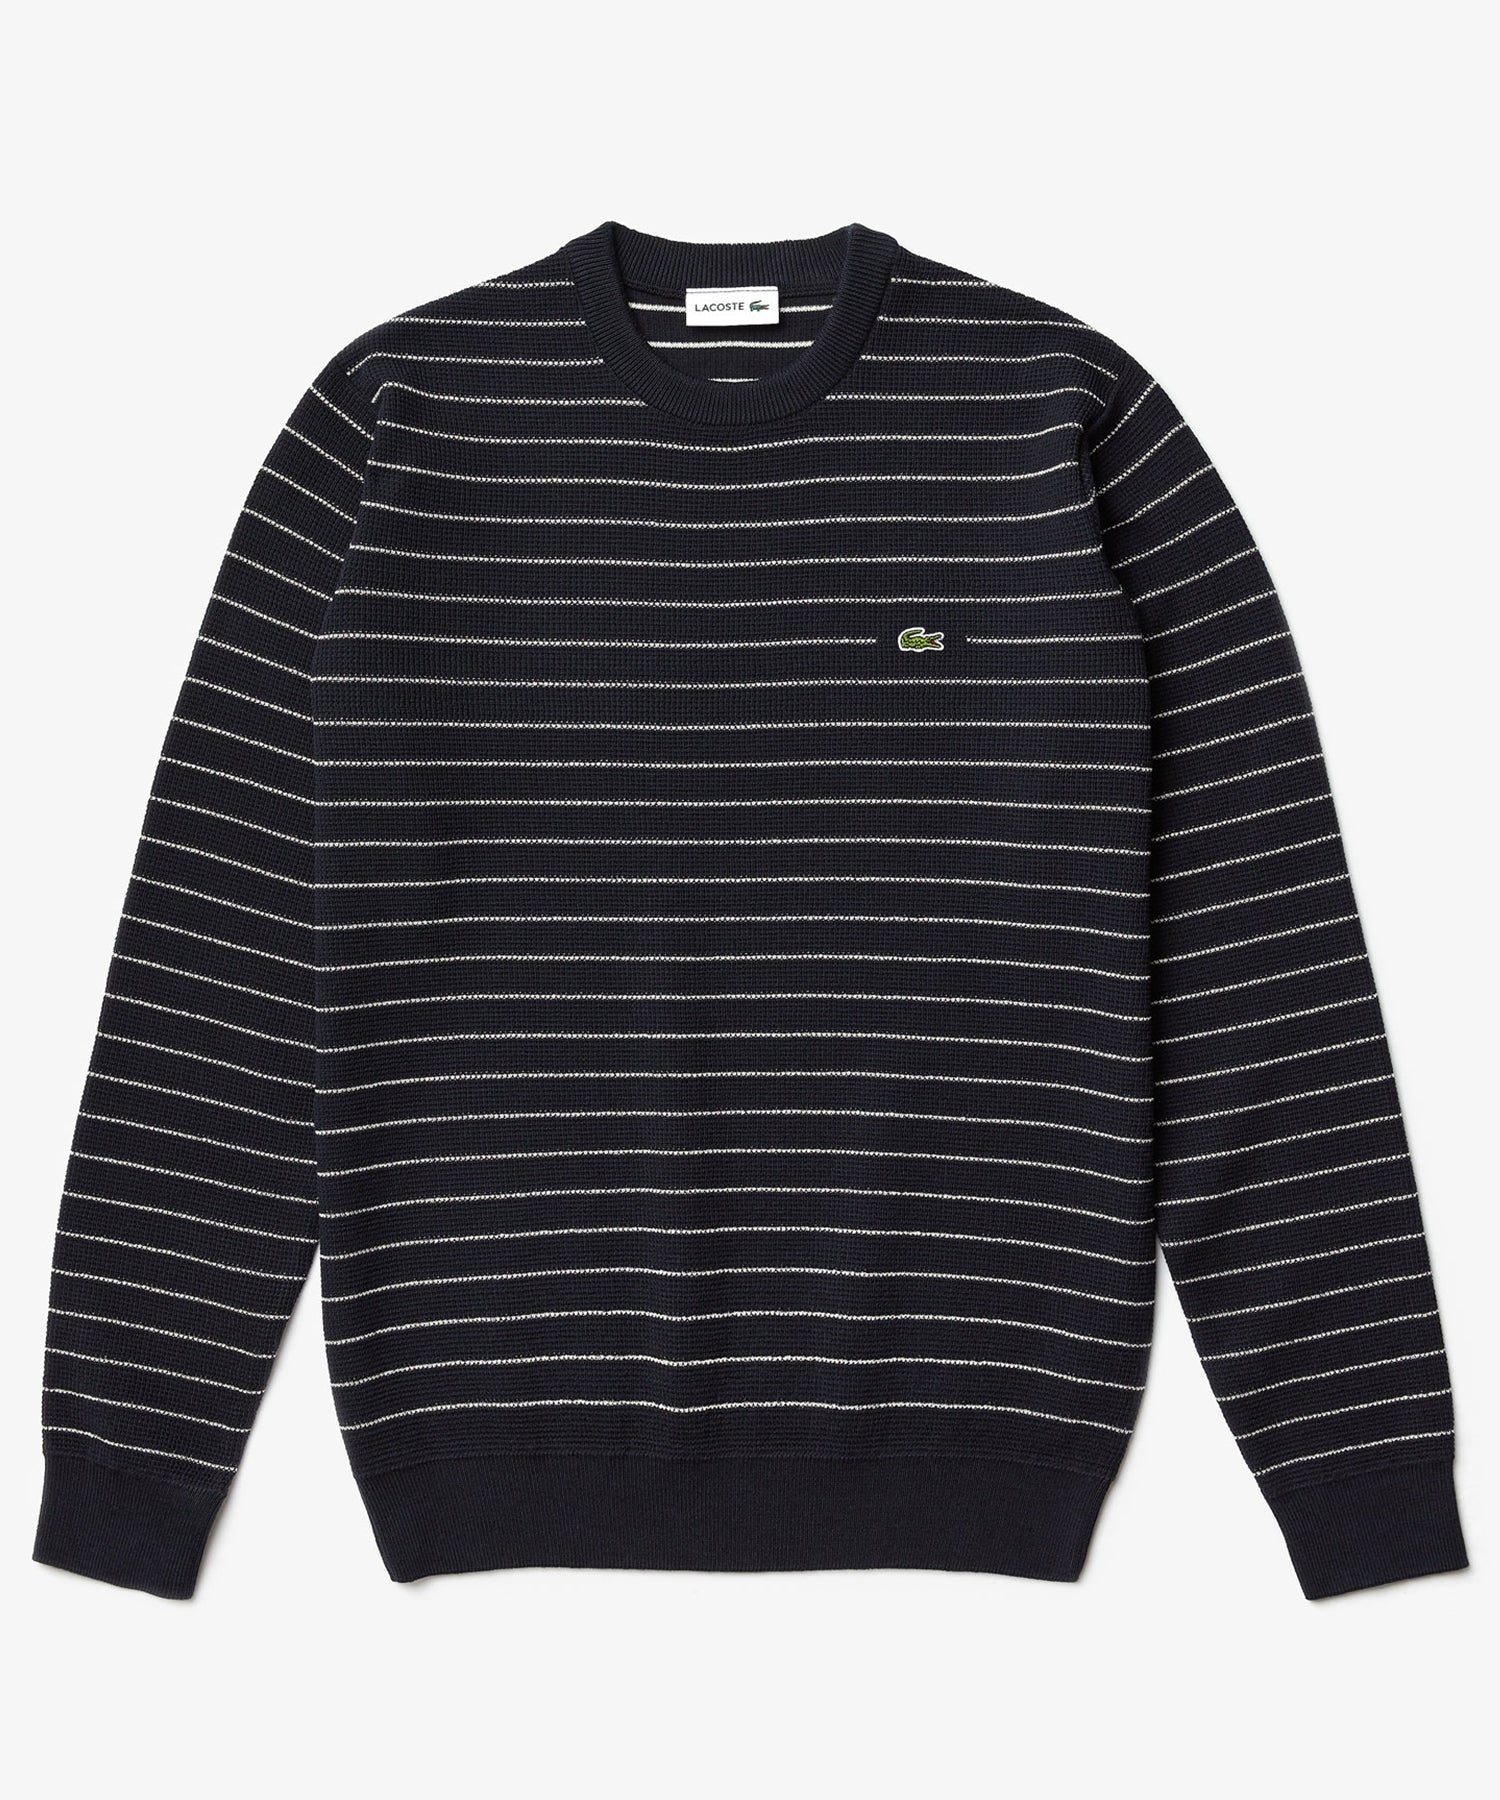 Lacoste Long Sleeve Striped Waffle Crew Sweater in Navy